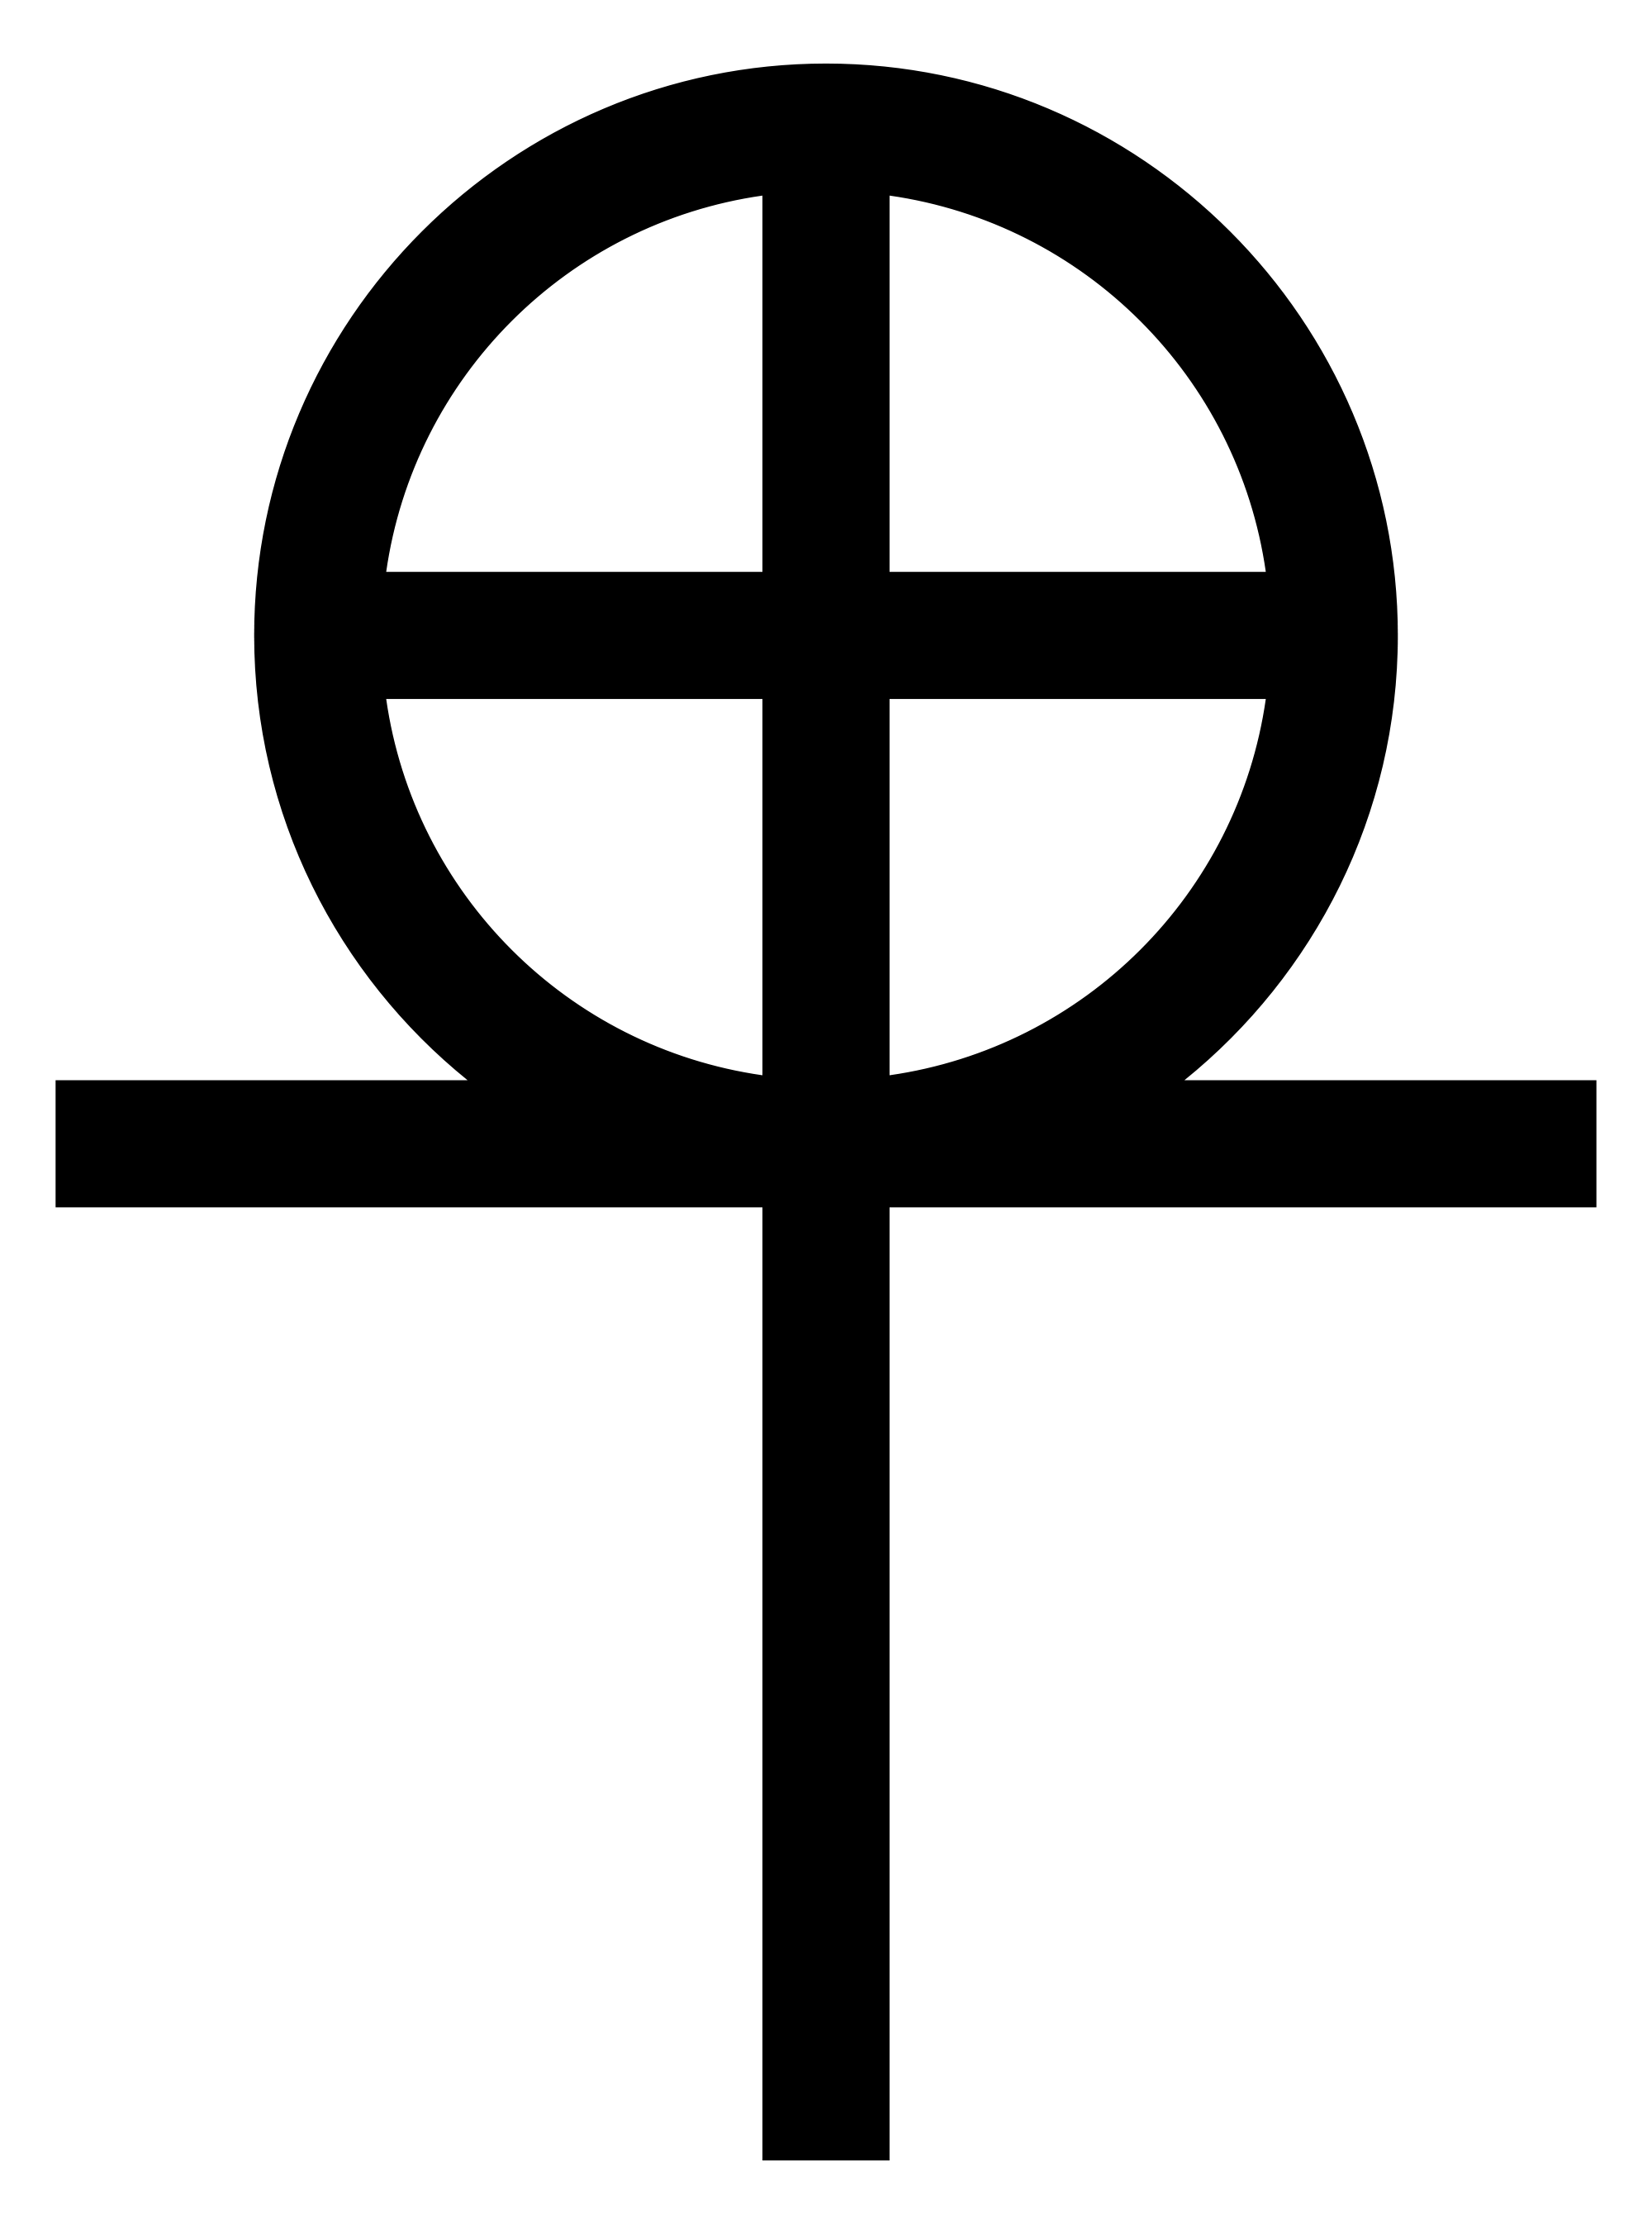 Orthodox cross clipart image royalty free download Transparent Bible Cliparts | Free download best Transparent Bible ... image royalty free download